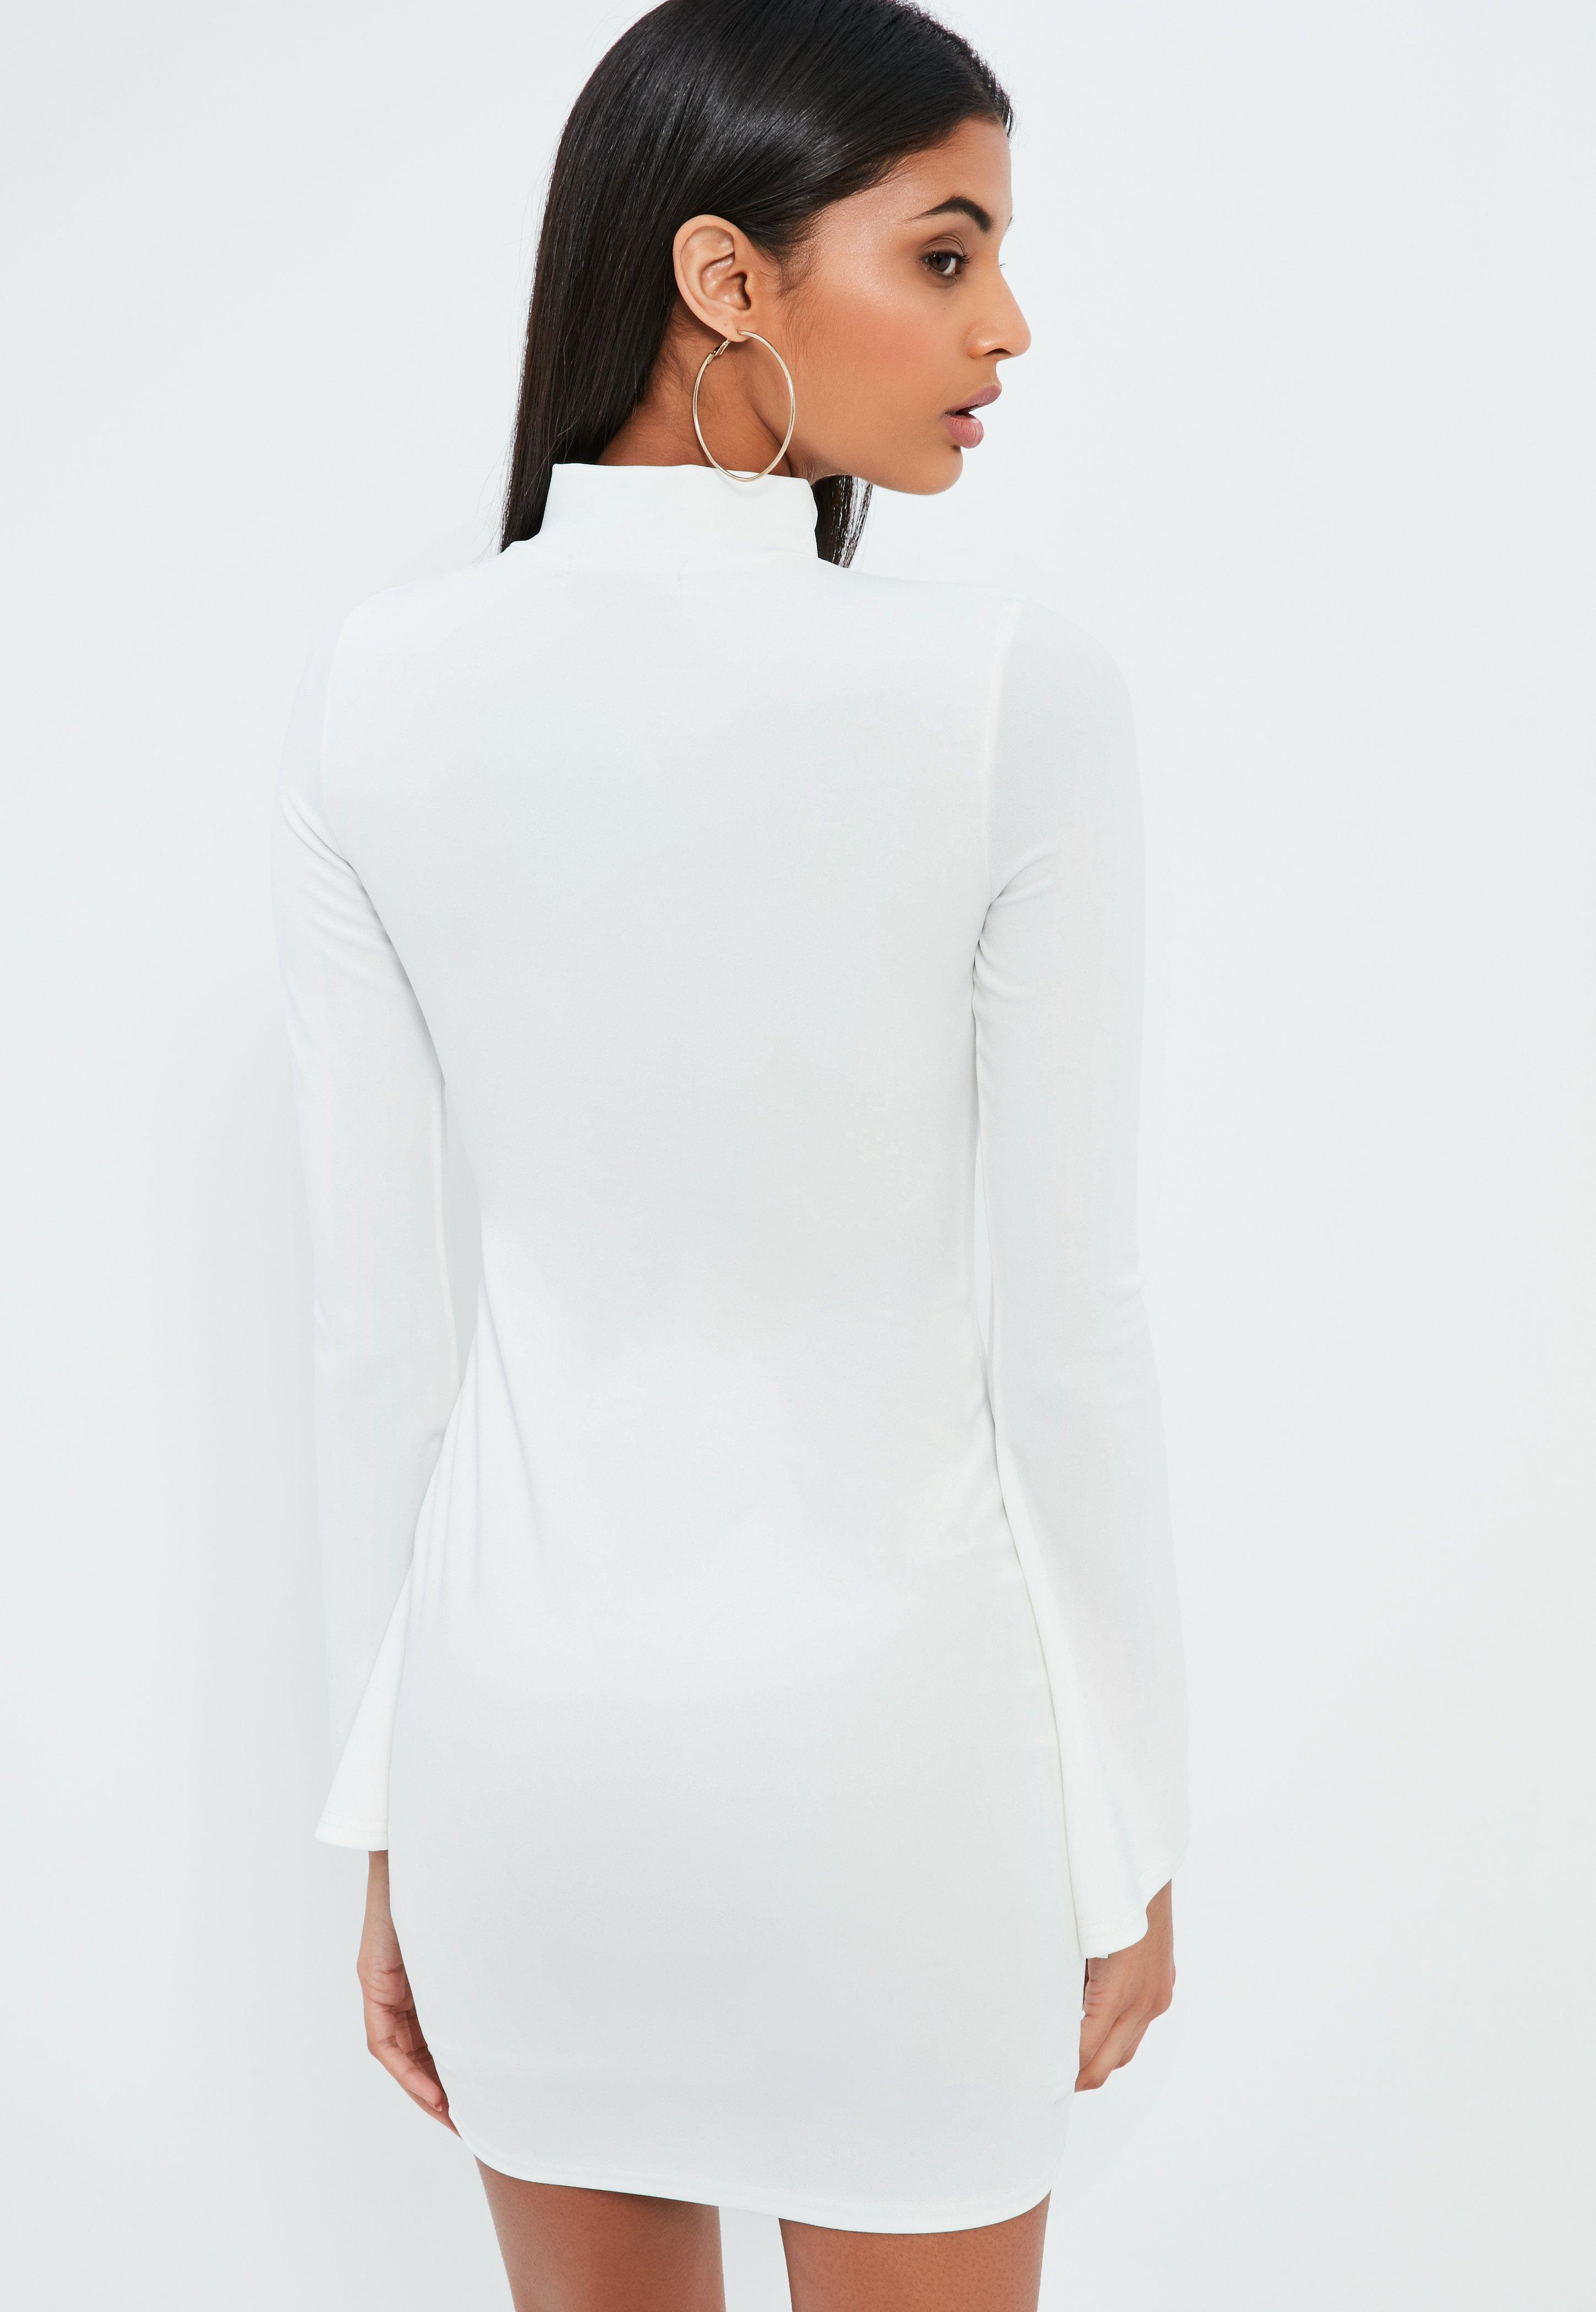 White Crepe High Neck Fitted Frog Fastening Mini Dress